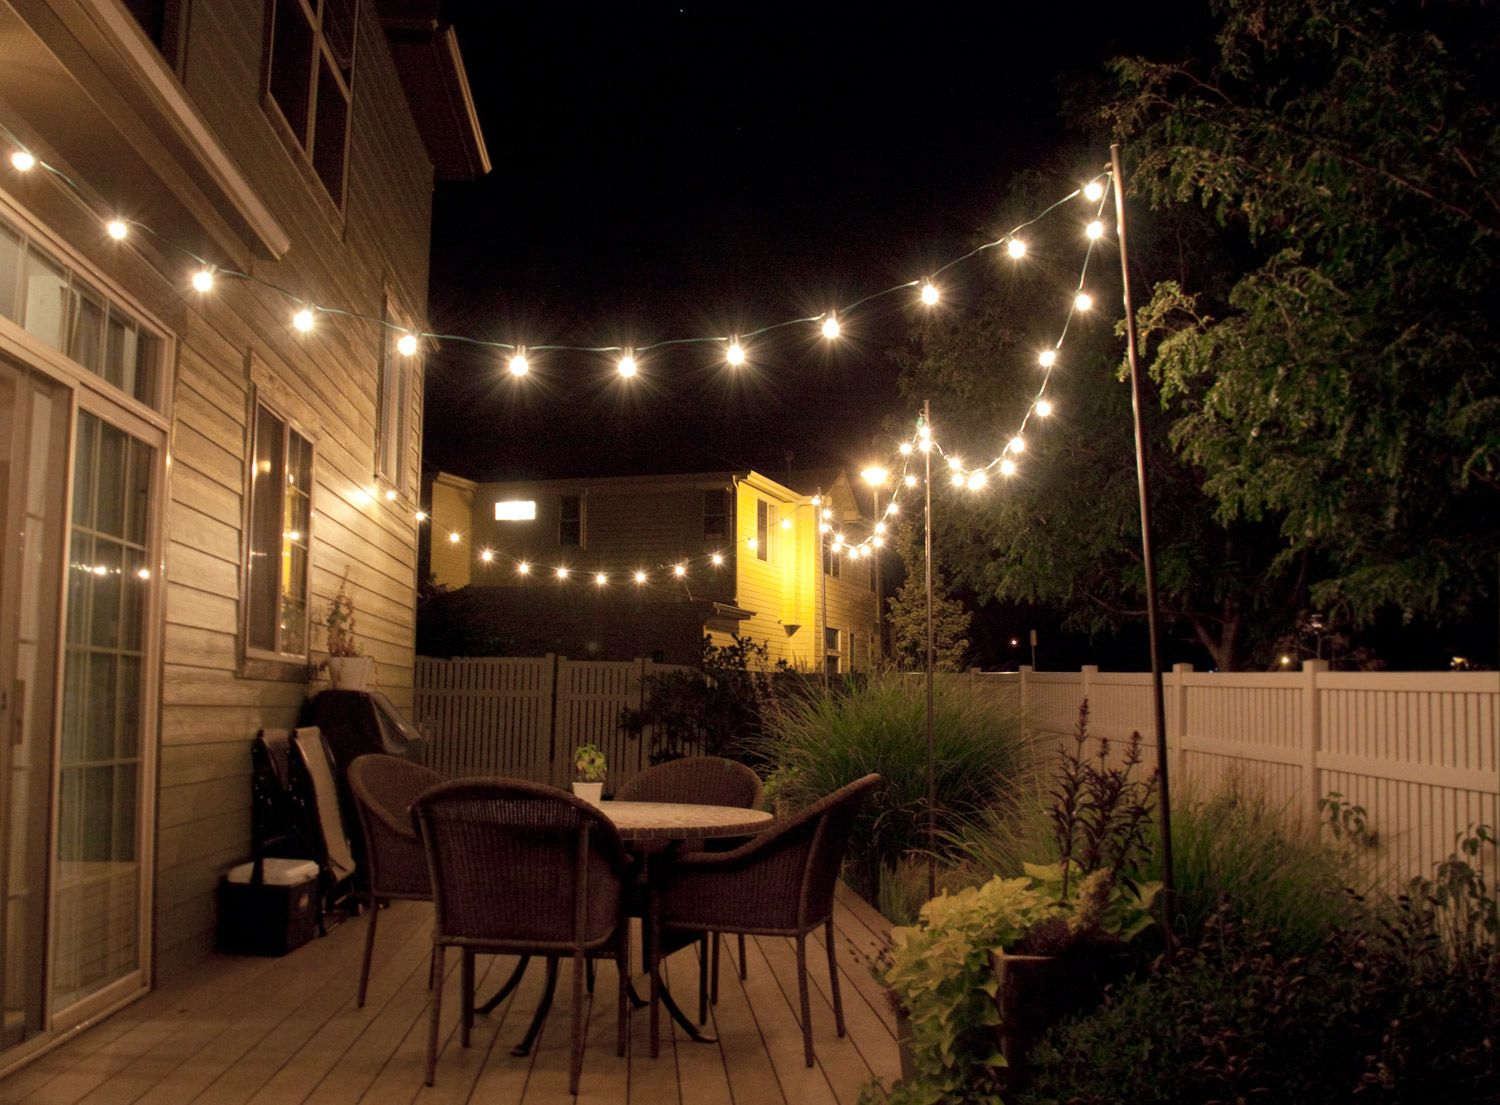 Solar patio lanterns - How To Make Inexpensive Poles To Hang String Lights On Caf Style Via Bright